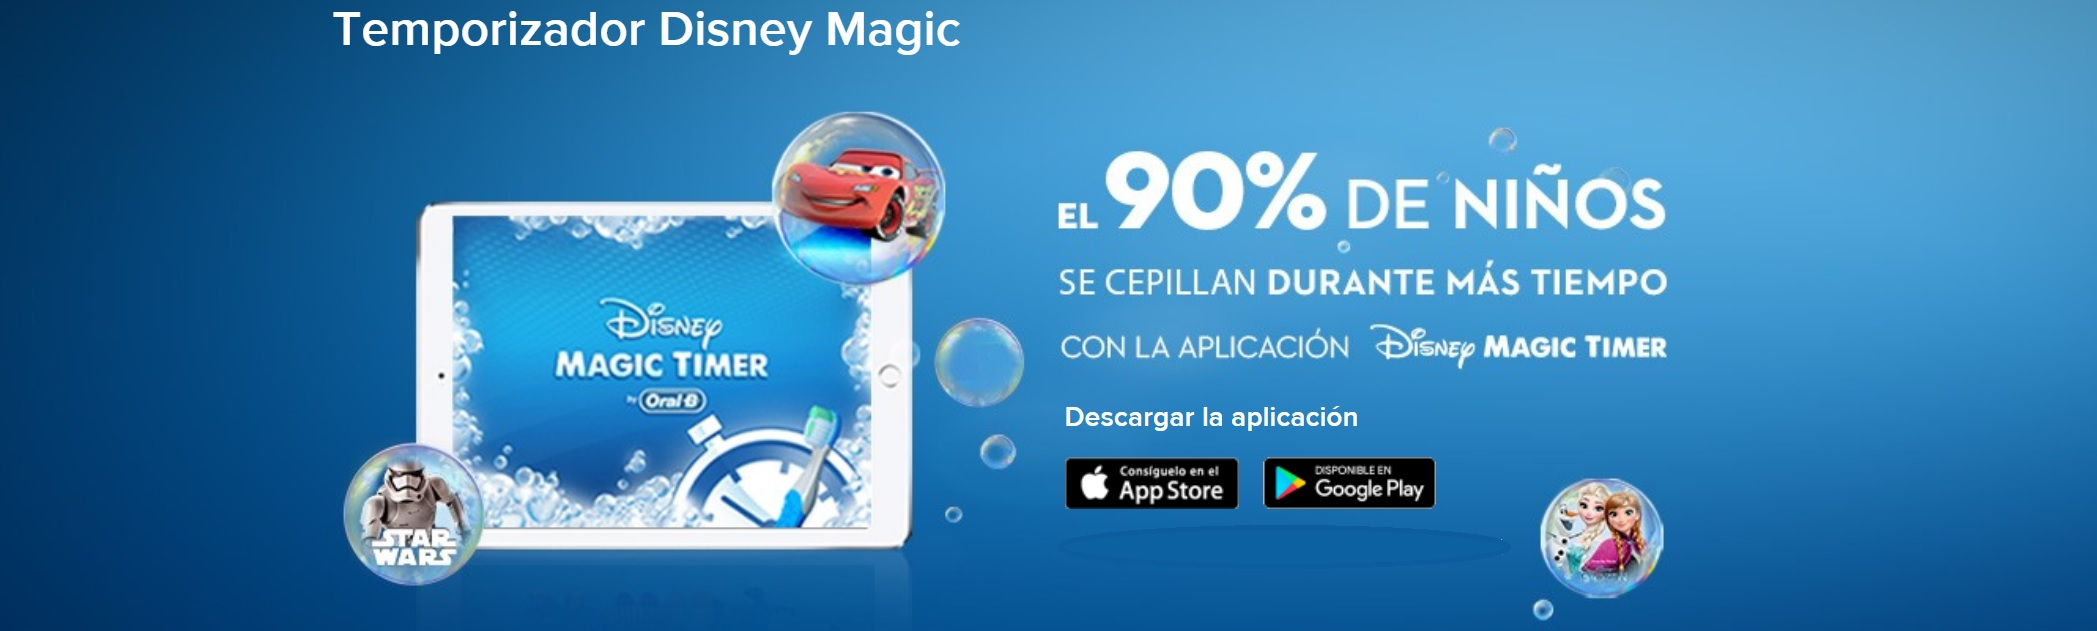 Oral-B magic timer descarga aplicación